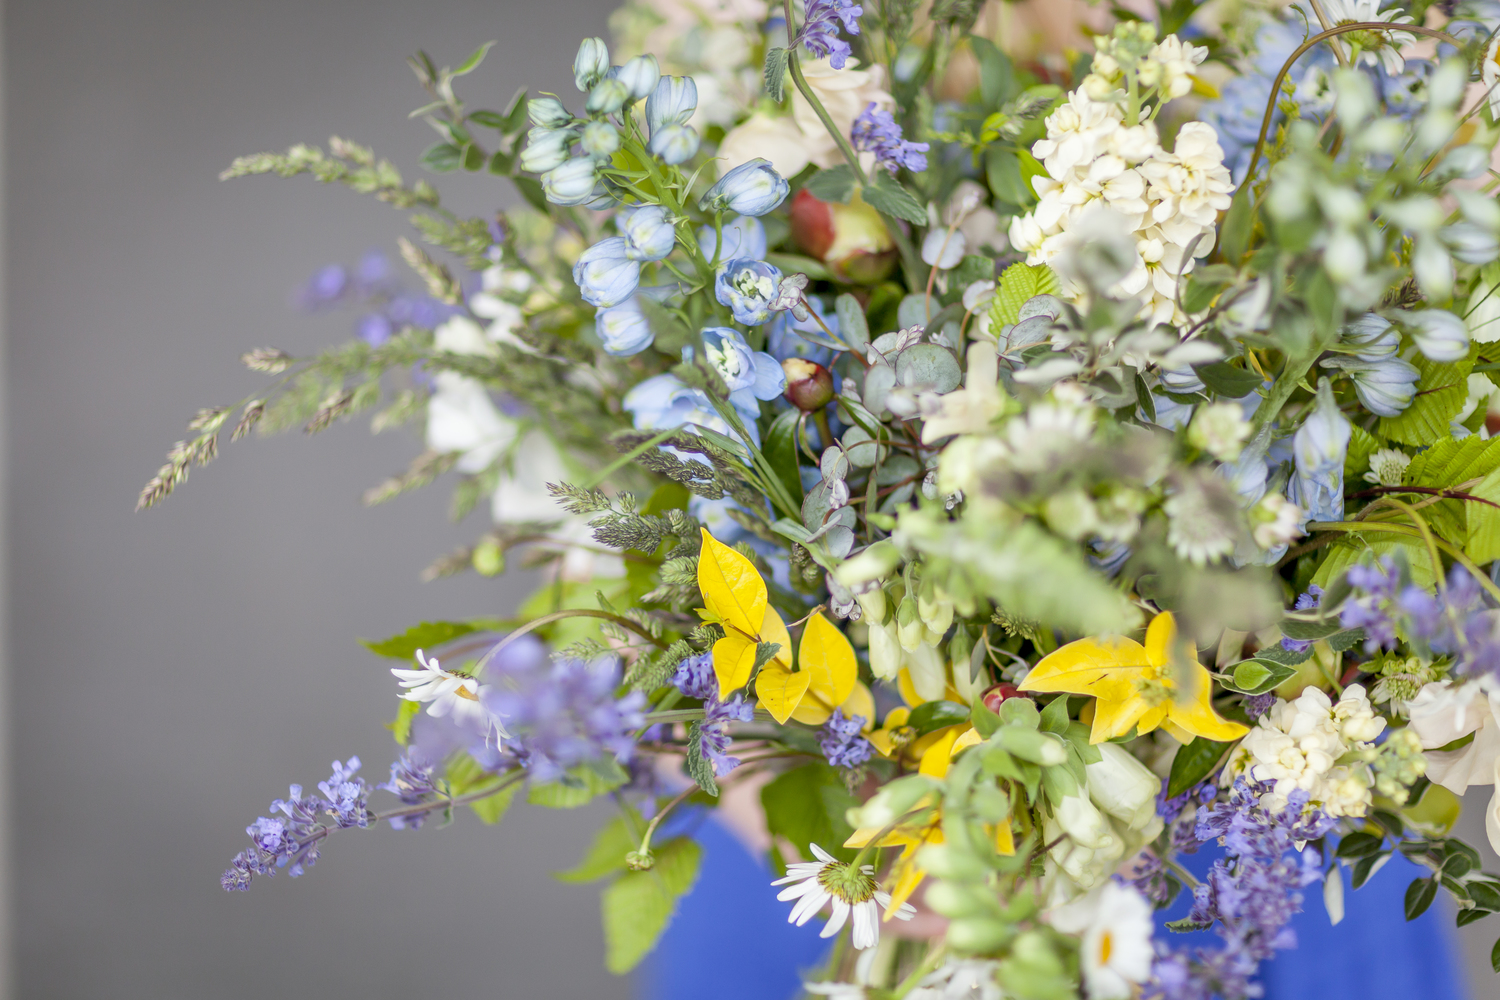 Buying british british flowers week not only do british flowers usually have a better scent than imported ones they will be fresher and last longer minimum distance means maximum vase life izmirmasajfo